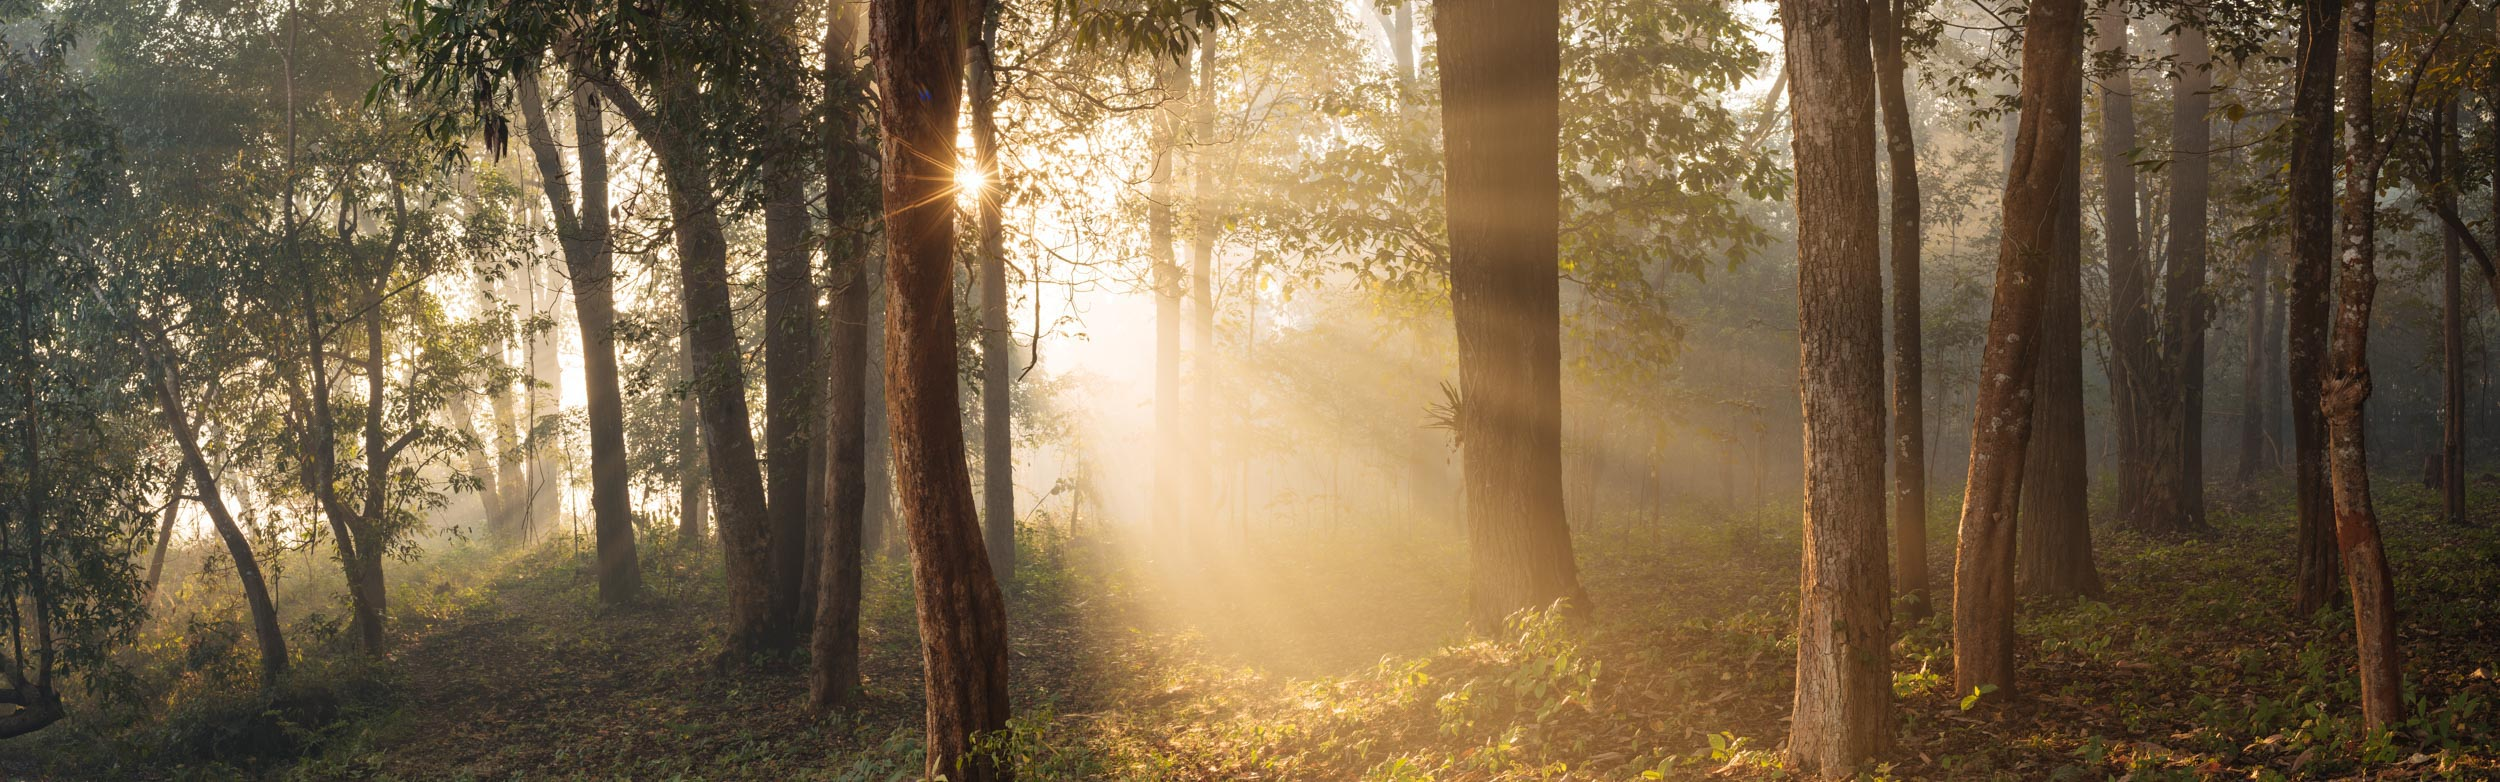 sunrise-dawn-forest-woods-landscape-photography-hsipaw-shan-myanmar